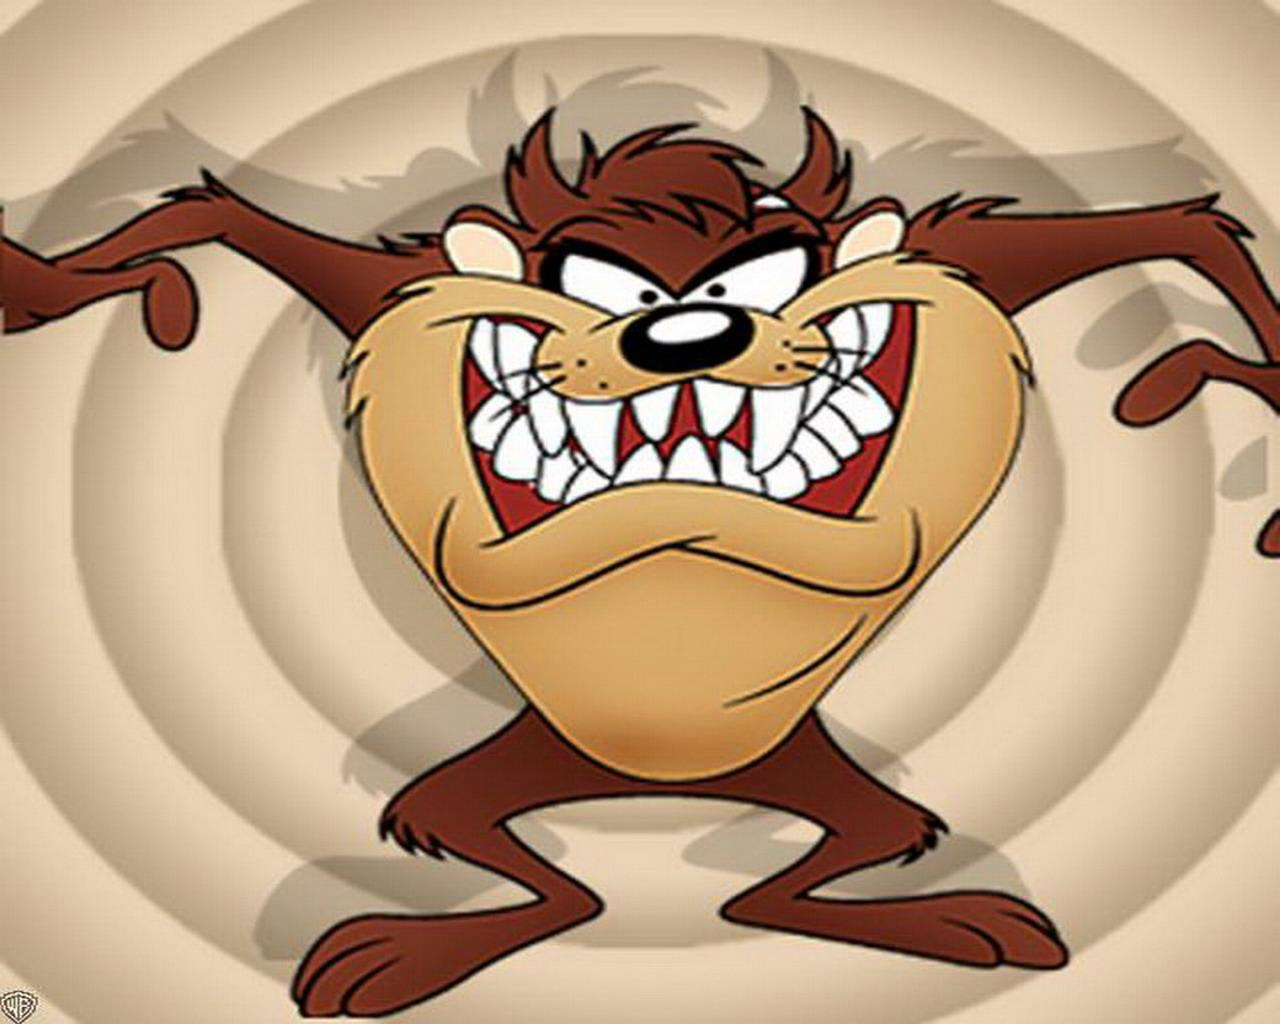 Images of looney tunes cartoon characters